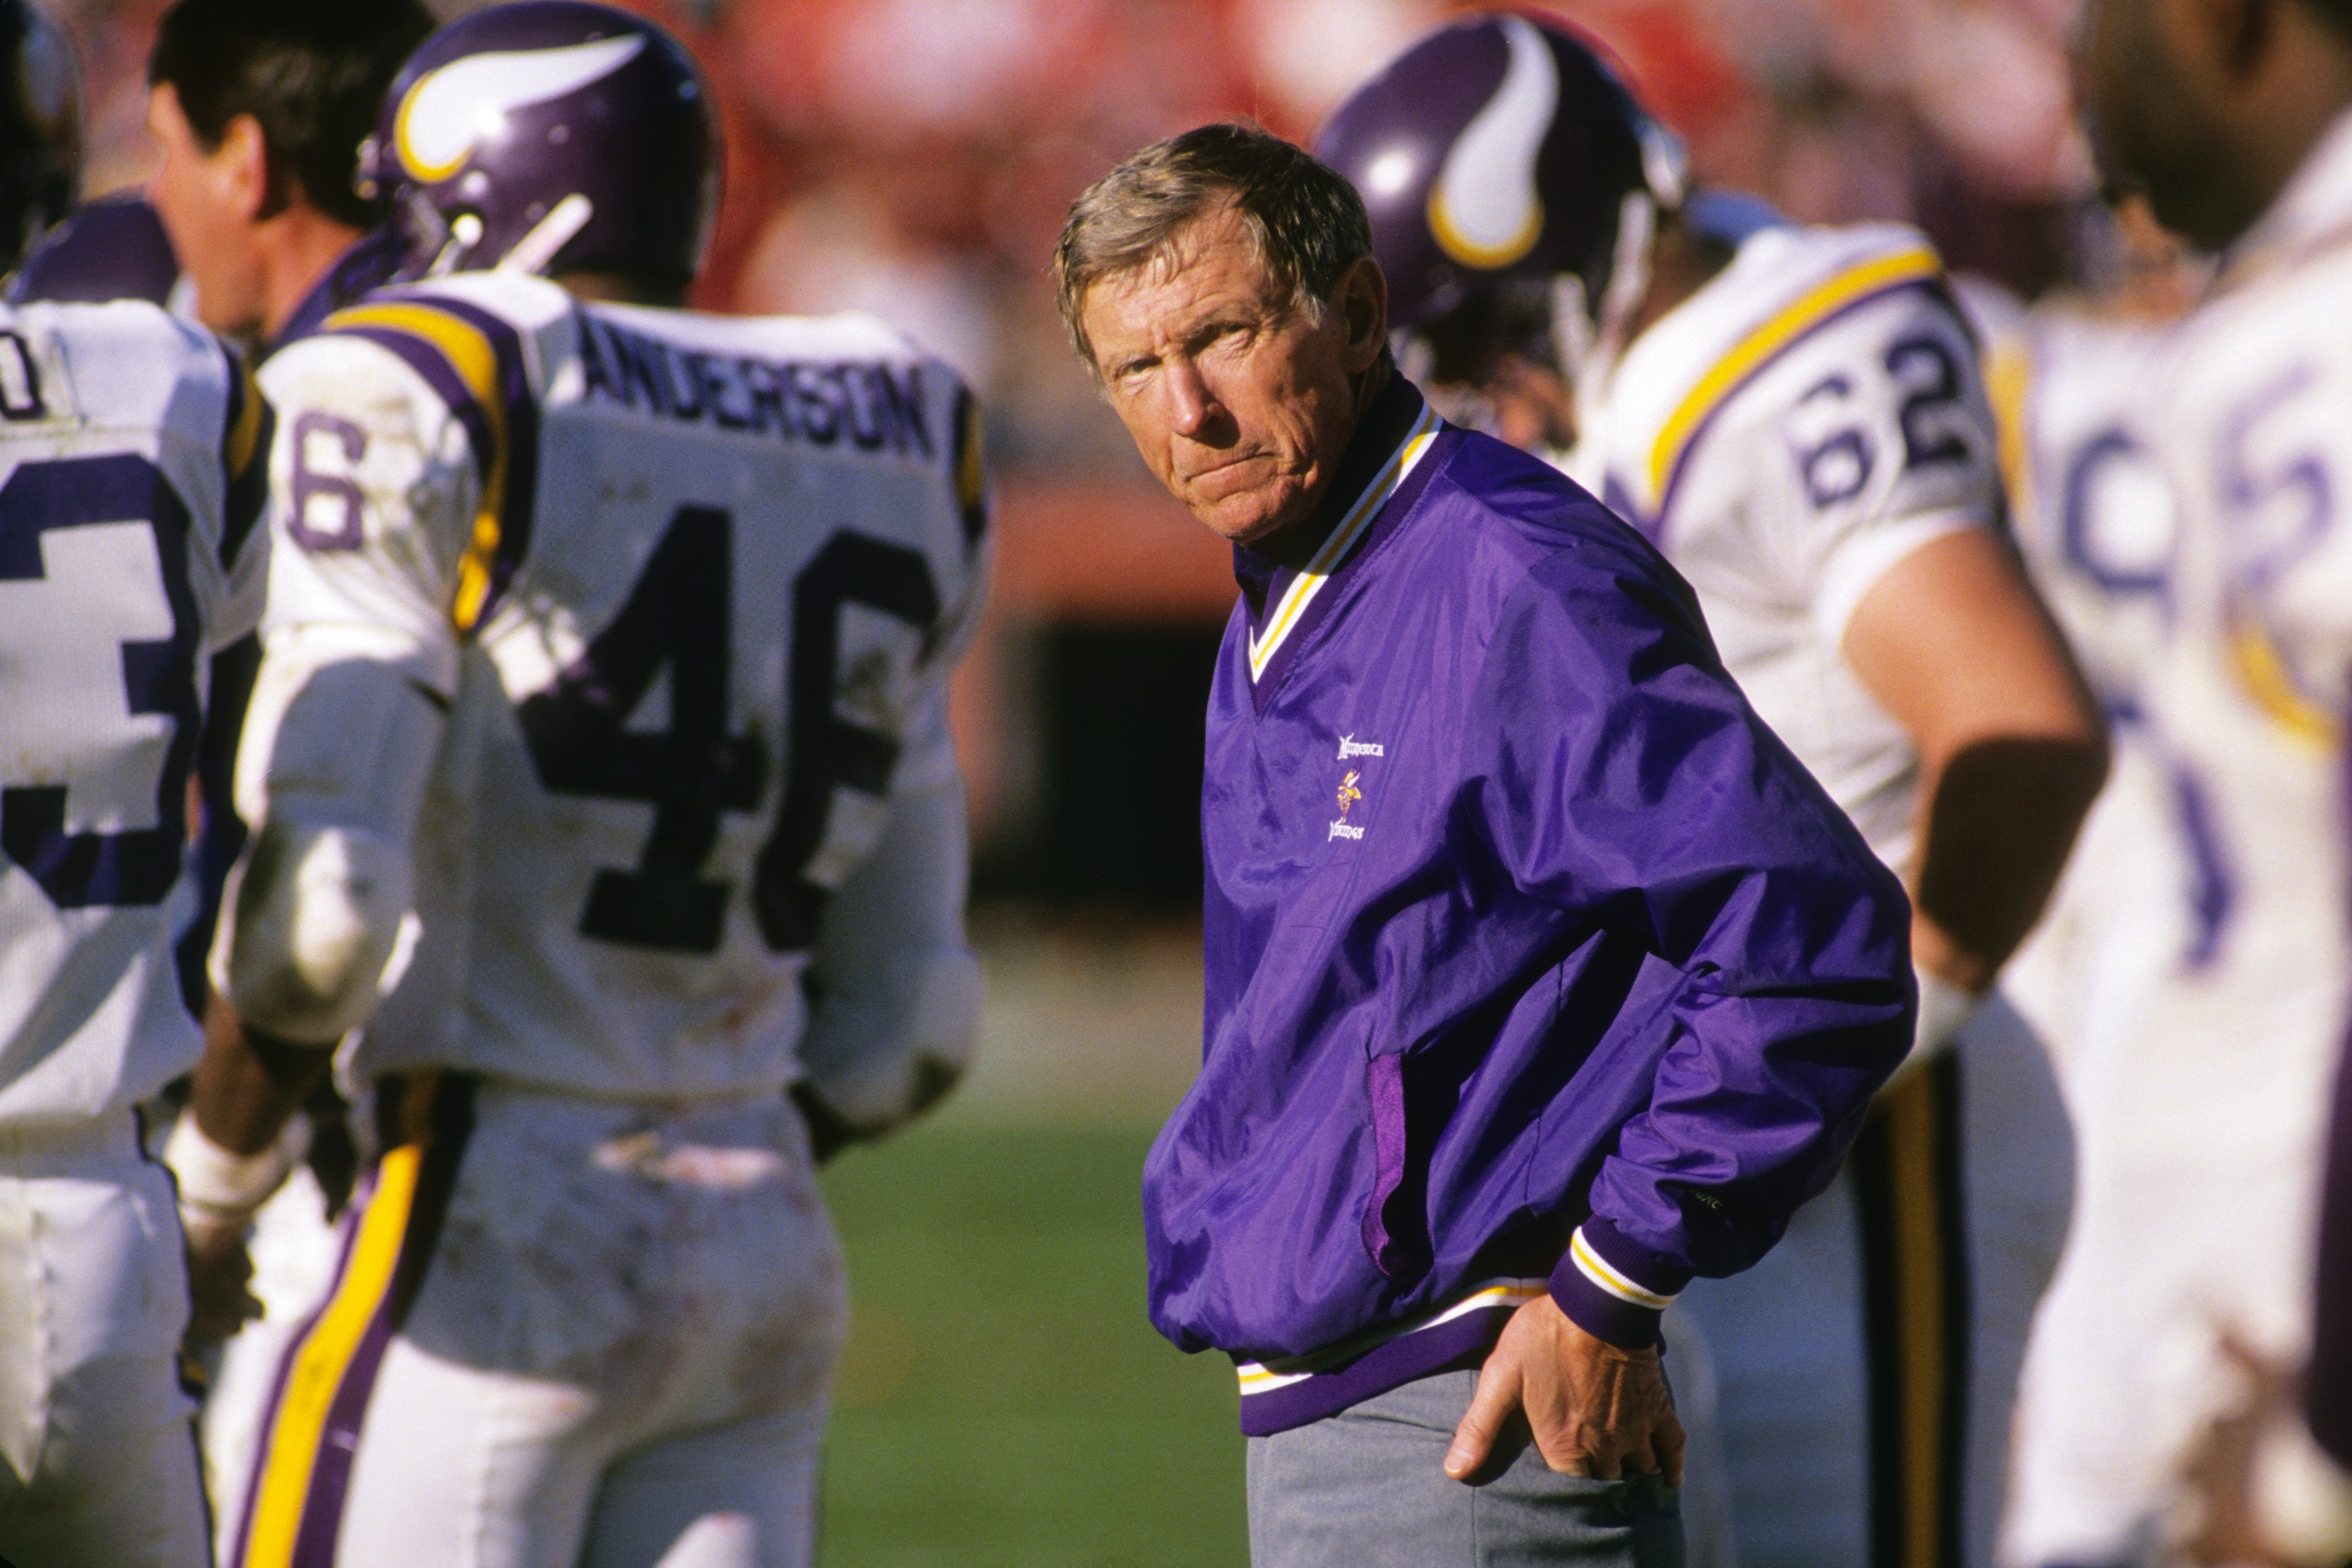 SAN FRANCISCO - JANUARY 1:  Head coach Jerry Burns of the Minnesota Vikings looks on during the 1988 NFC Divisional Playoffs against the San Francisco 49ers at Candlestick Park on January 1, 1989 in San Francisco, California.  The 49ers won 34-9.  (Photo